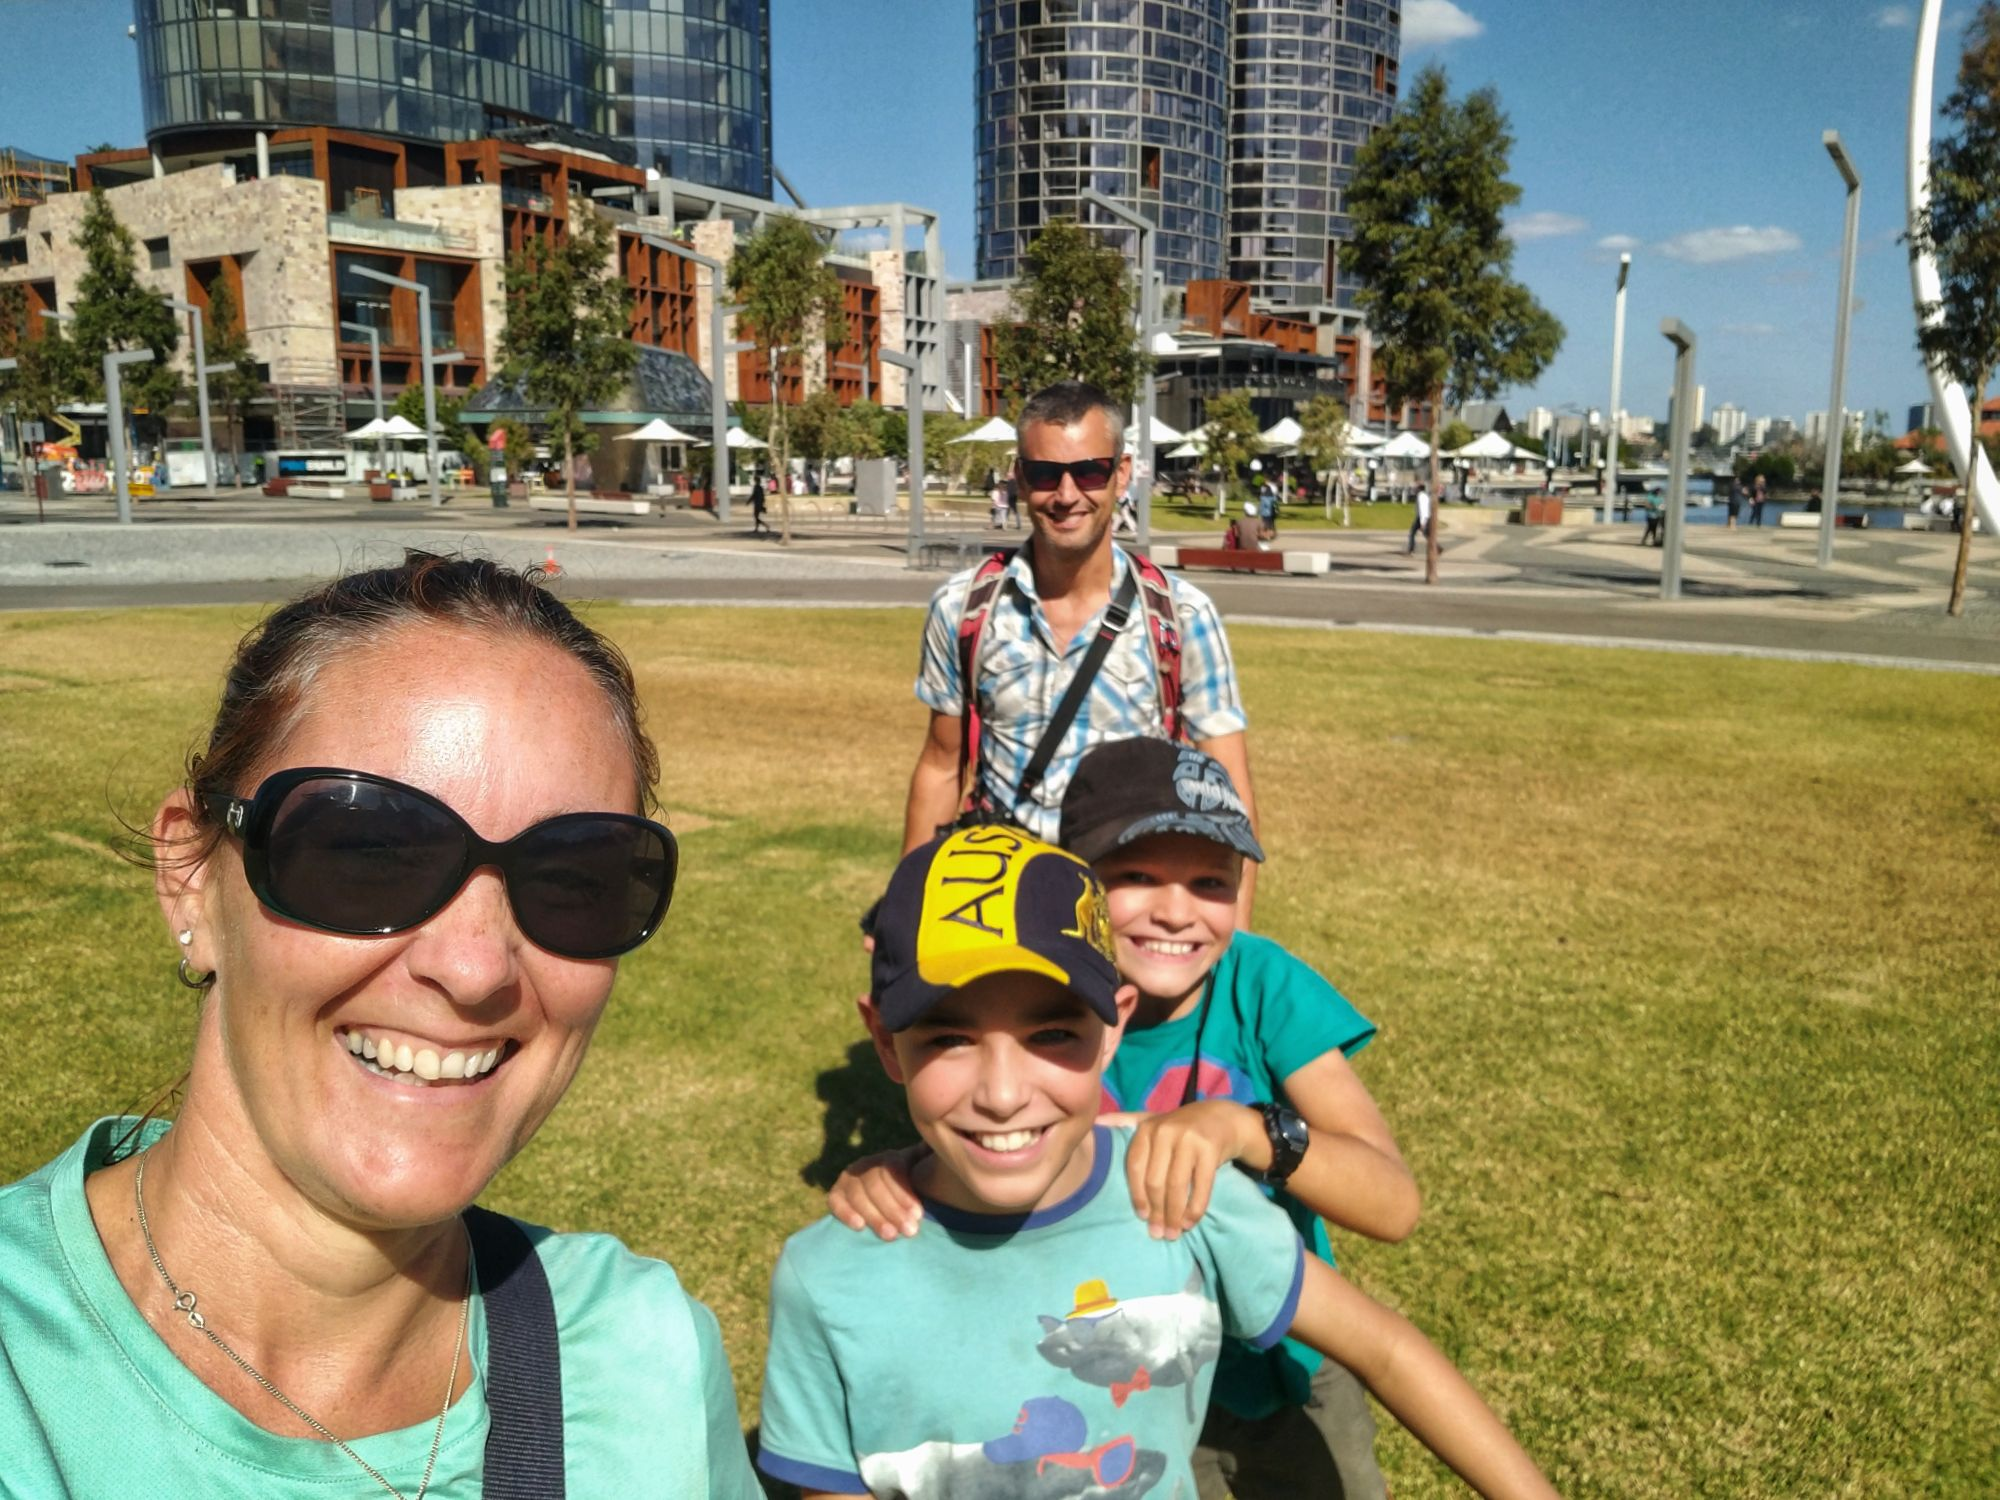 Whats On Perth Kids Visit Perth City Centre With Kids World Adventure With Family